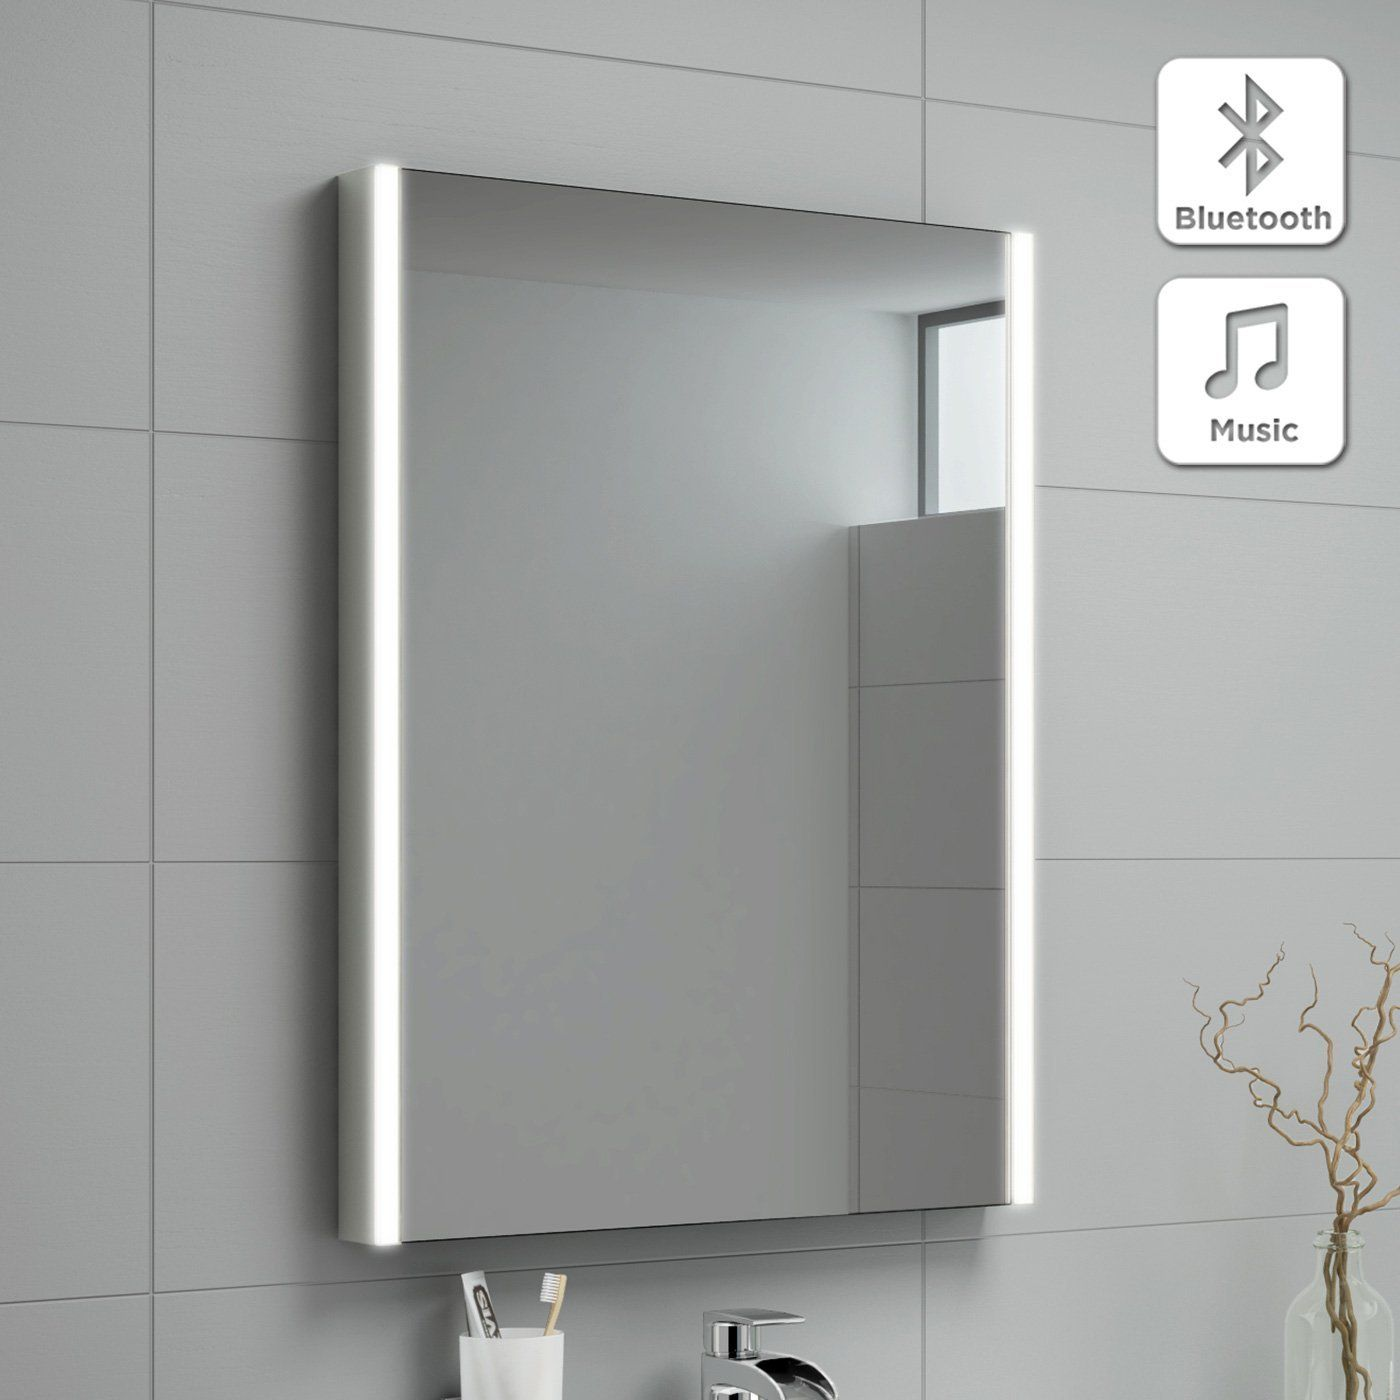 Best Bathroom Mirrors To Aid Your Beauty Regime From Small Circular To Large Rectangular Glass Amazing Bathrooms Led Mirror Bathroom Bathroom Mirror